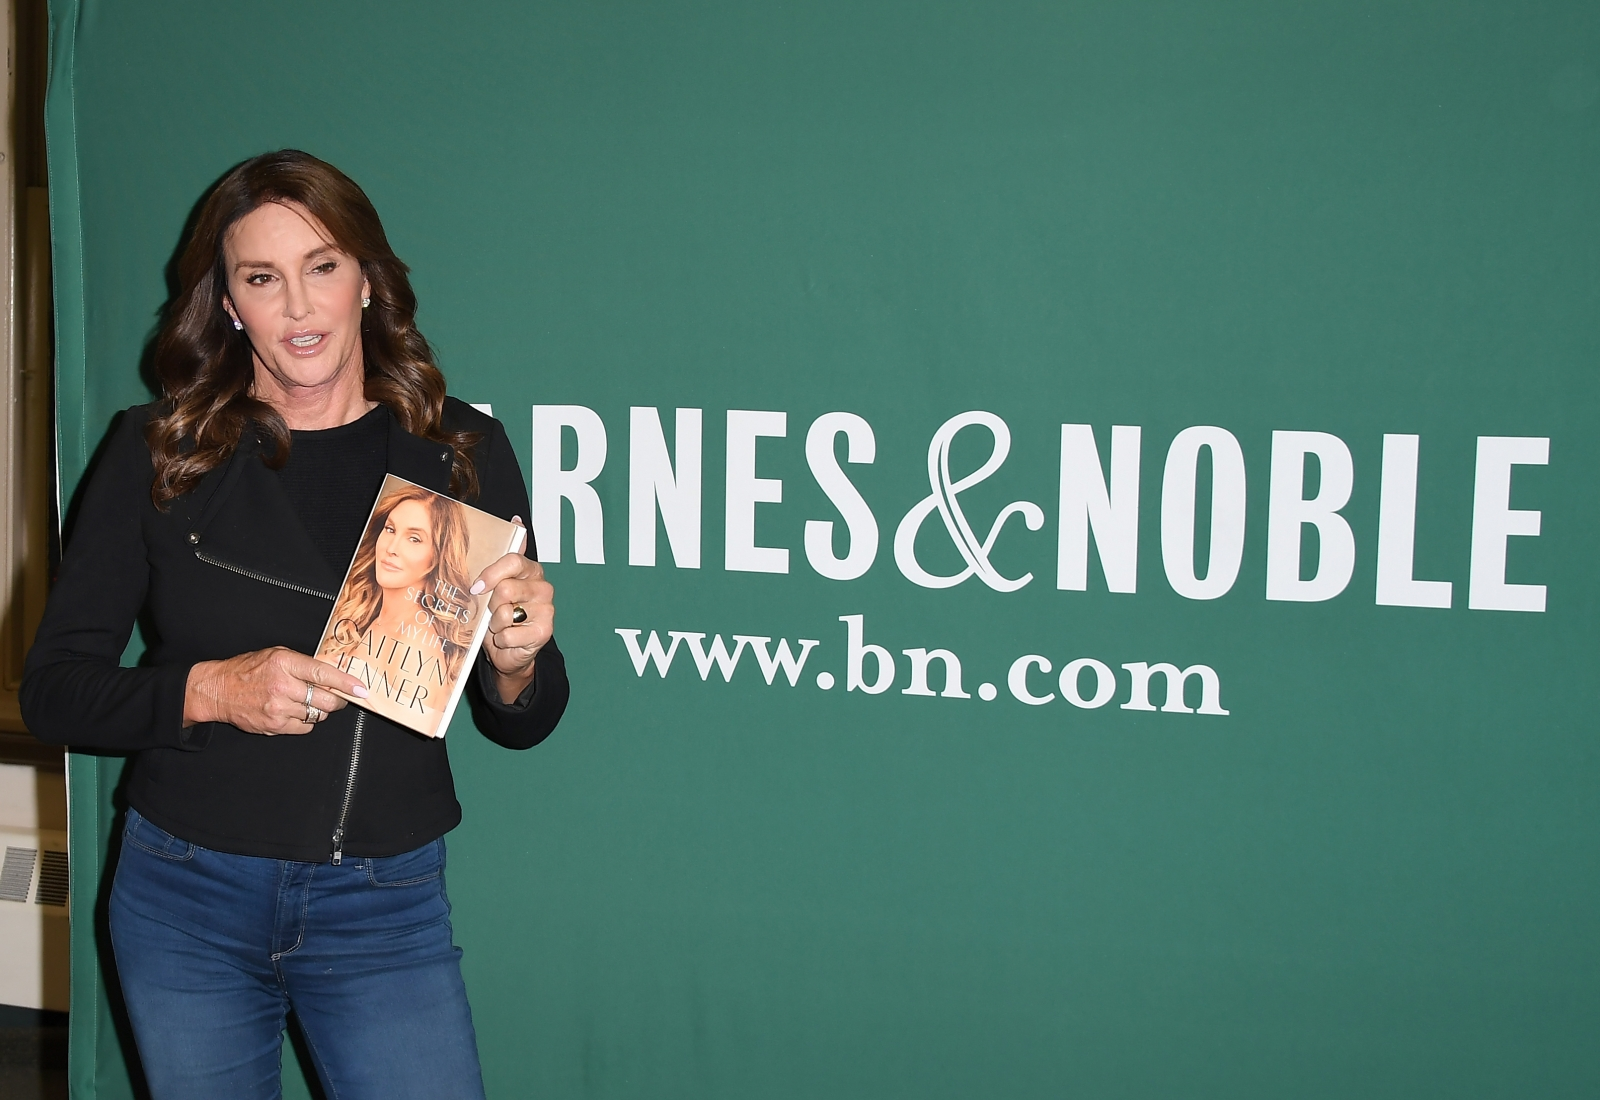 Caitlyn plummets in baby name popularity